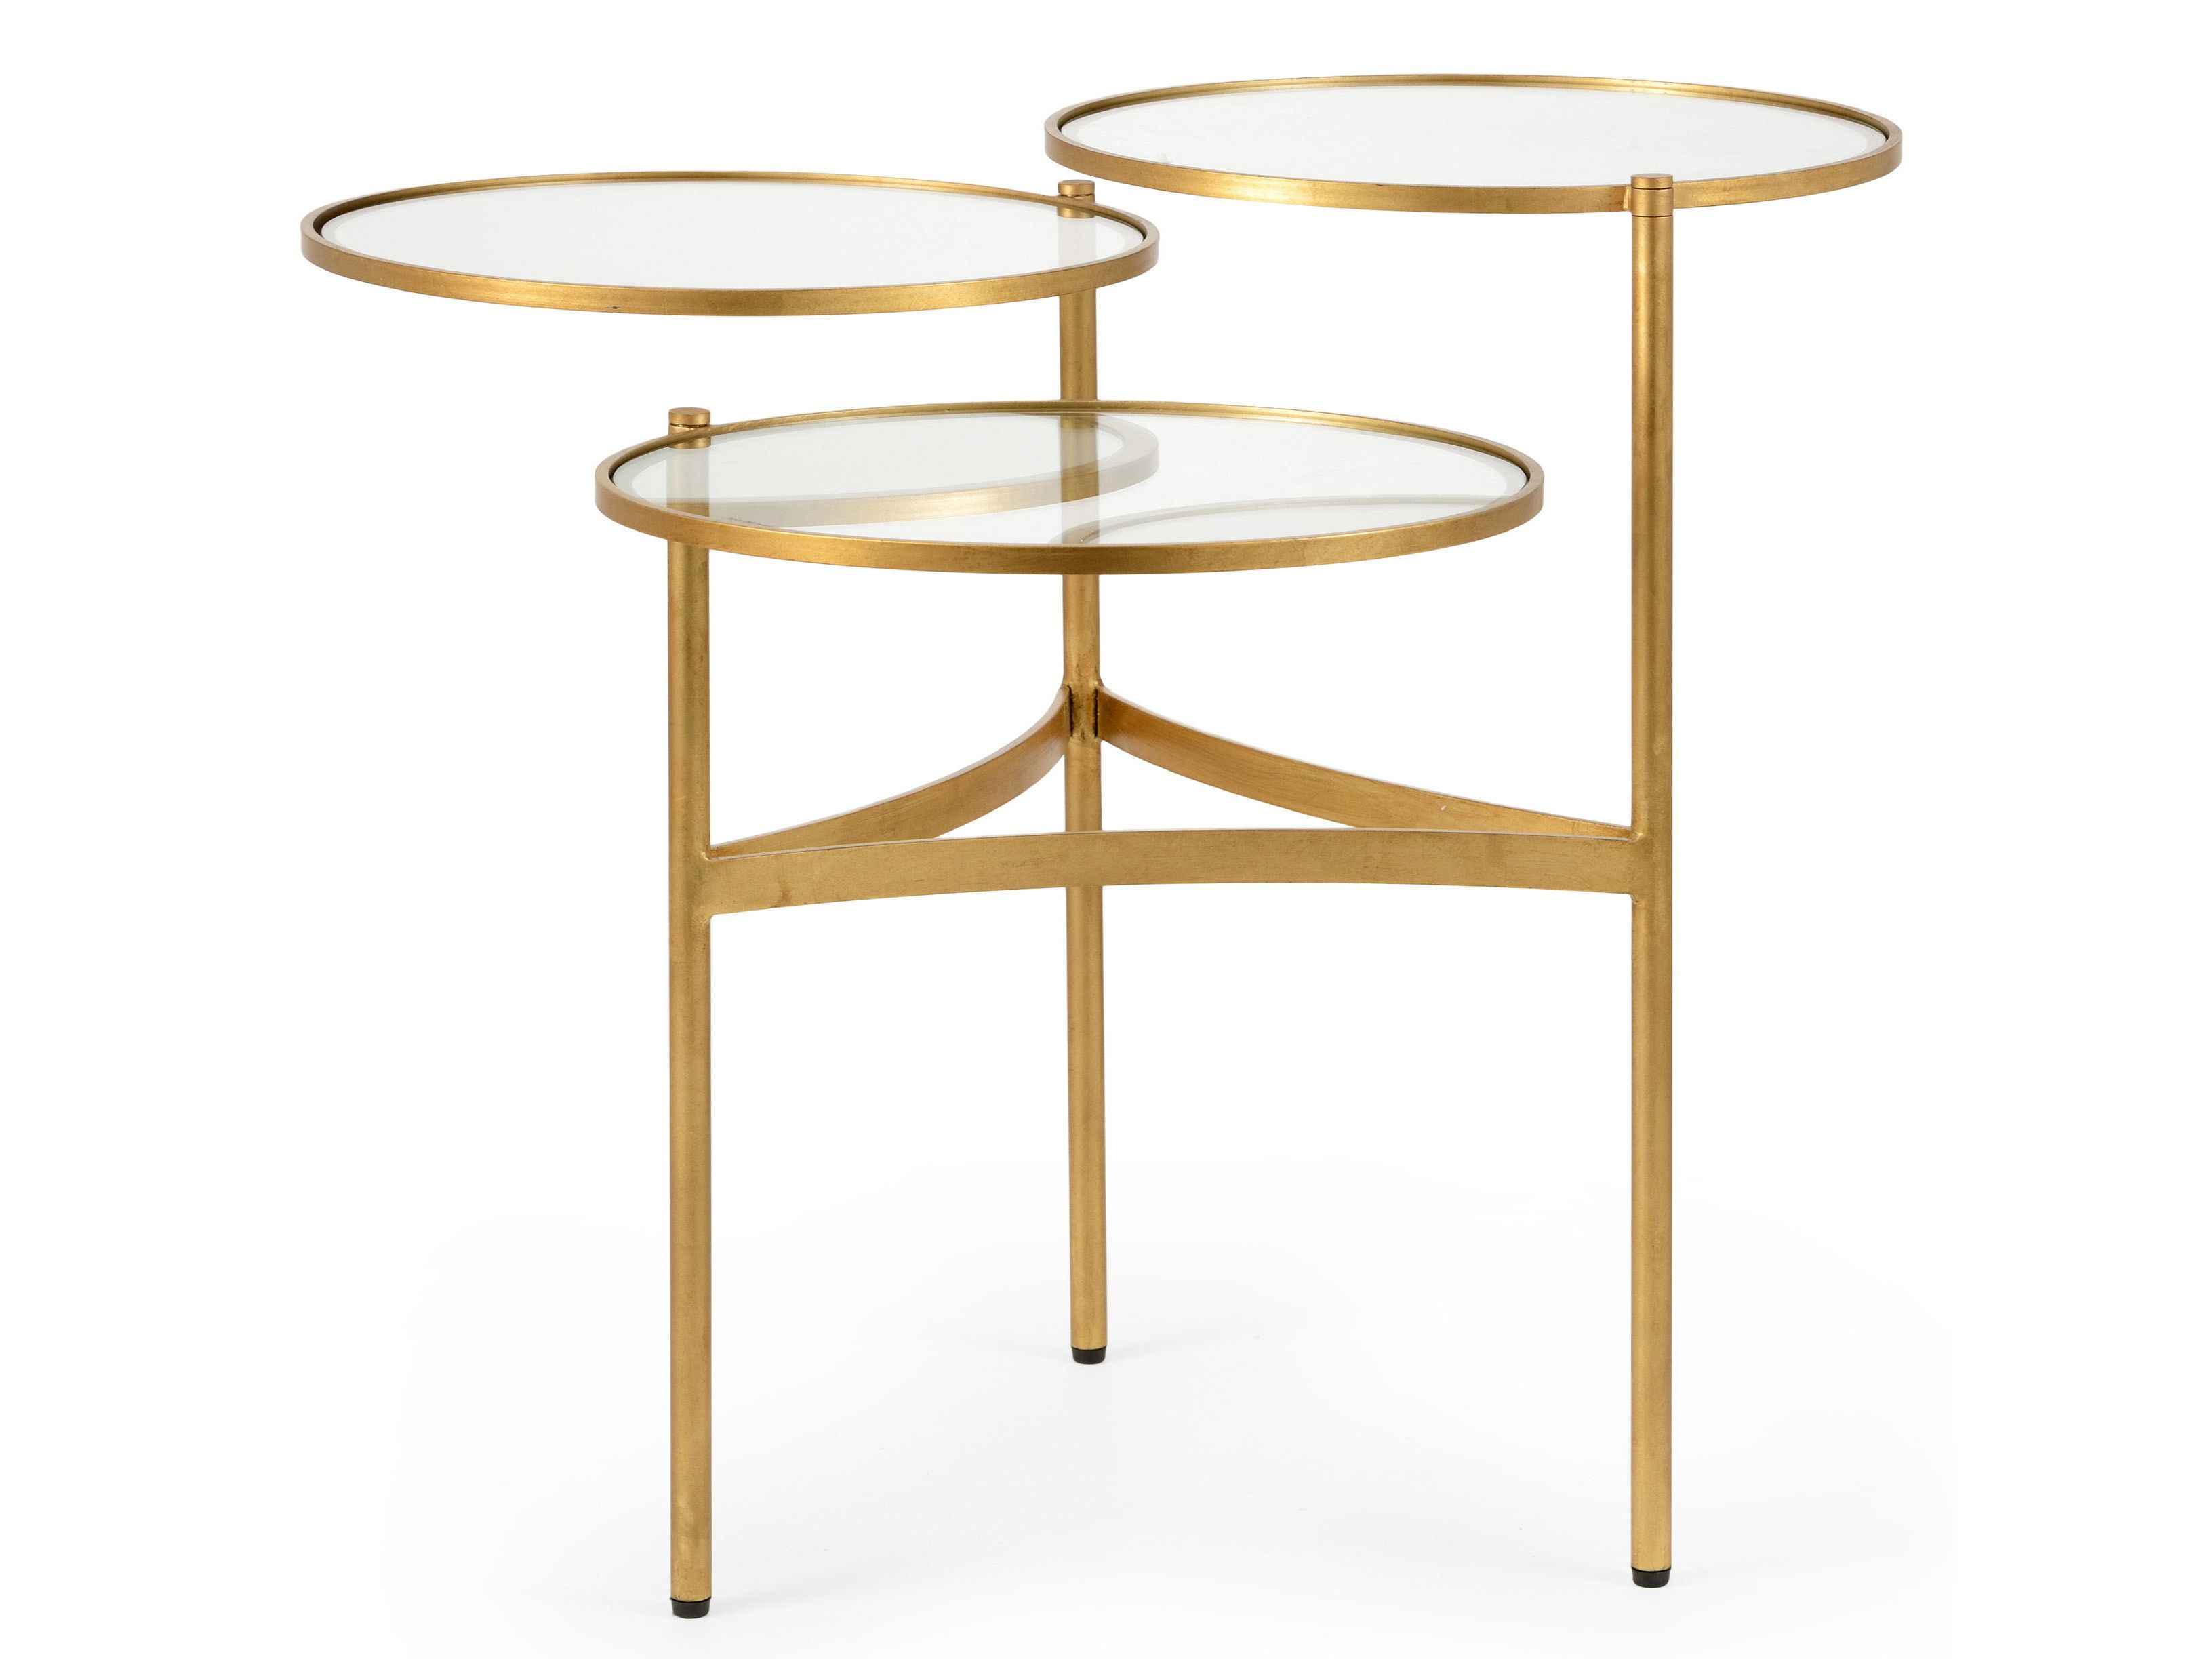 Hollande 3 Tier Coffee Table Gold Clear 3 Tier Coffee Table Coffee Table Gold Coffee Table